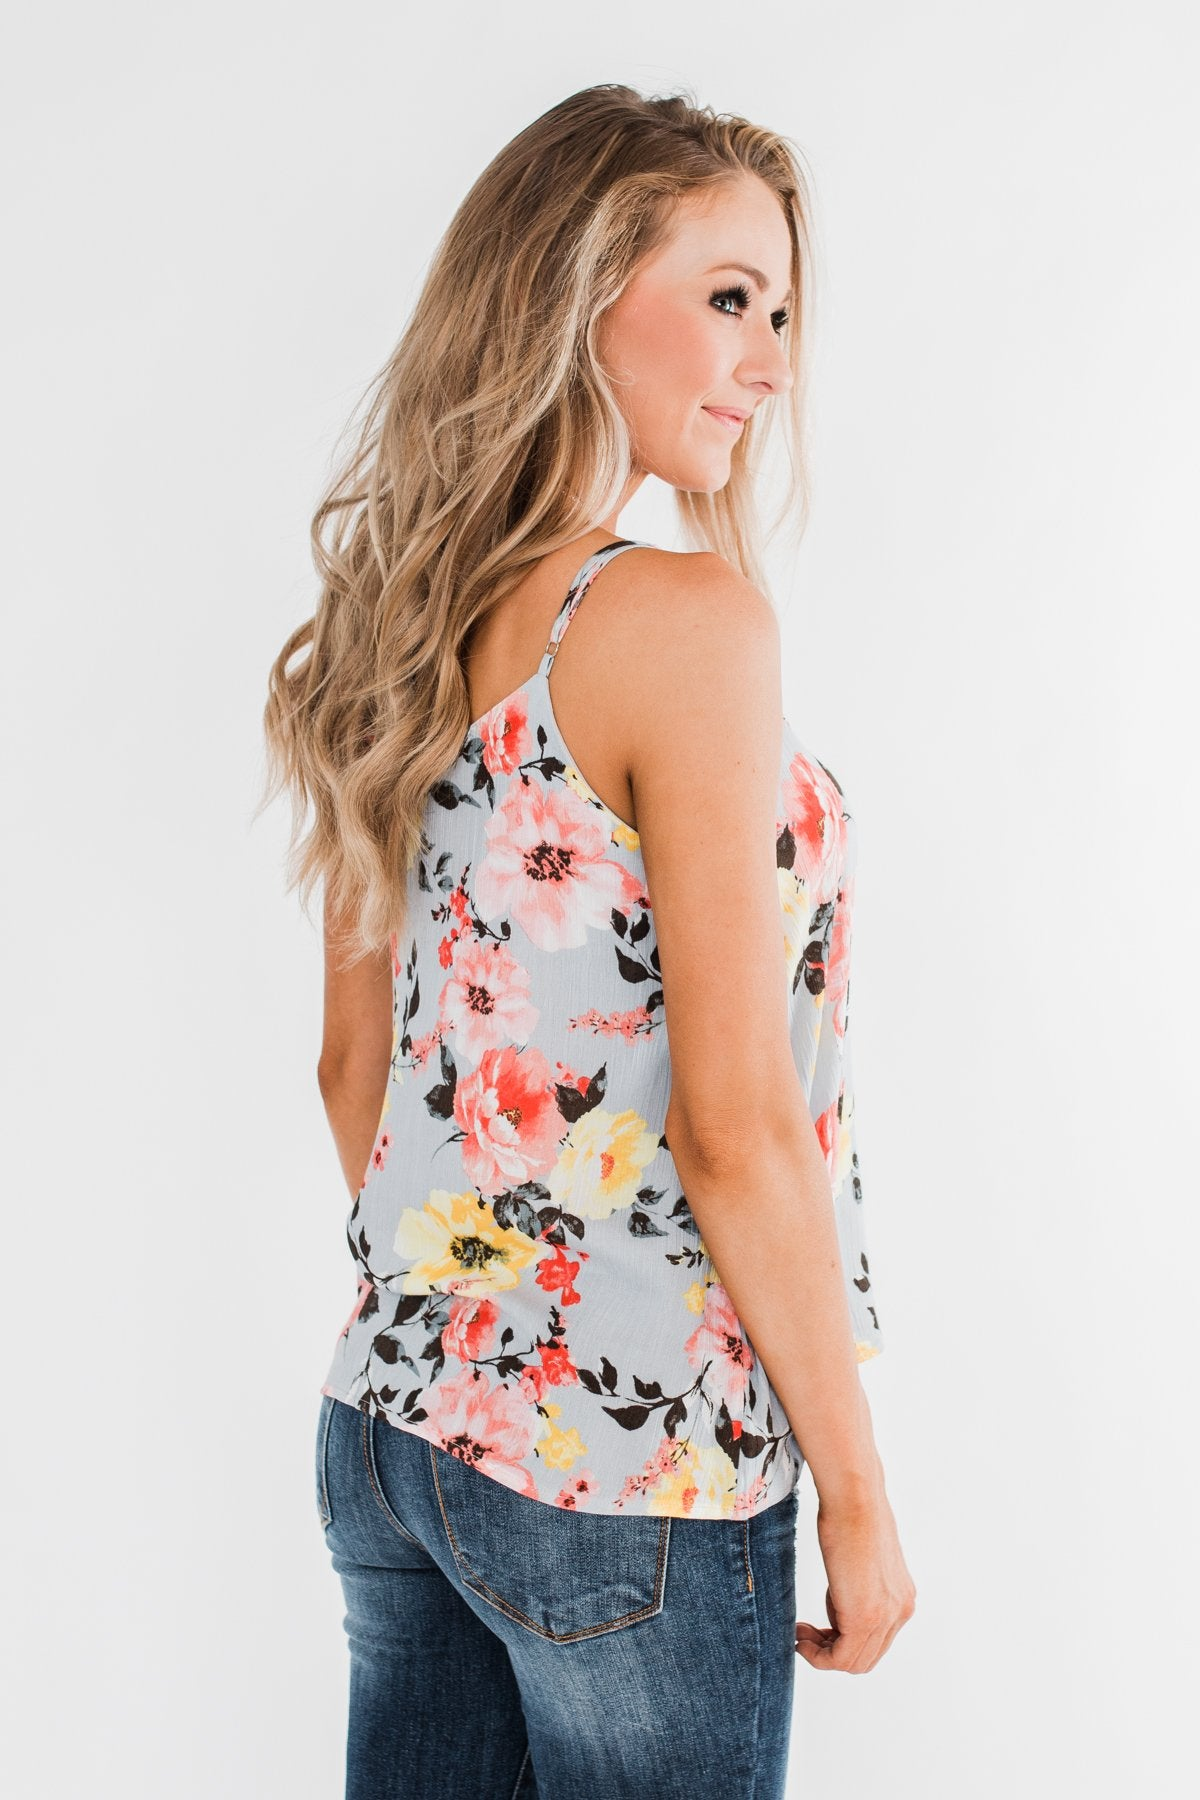 Always A Good Time Floral Tank Top- Periwinkle